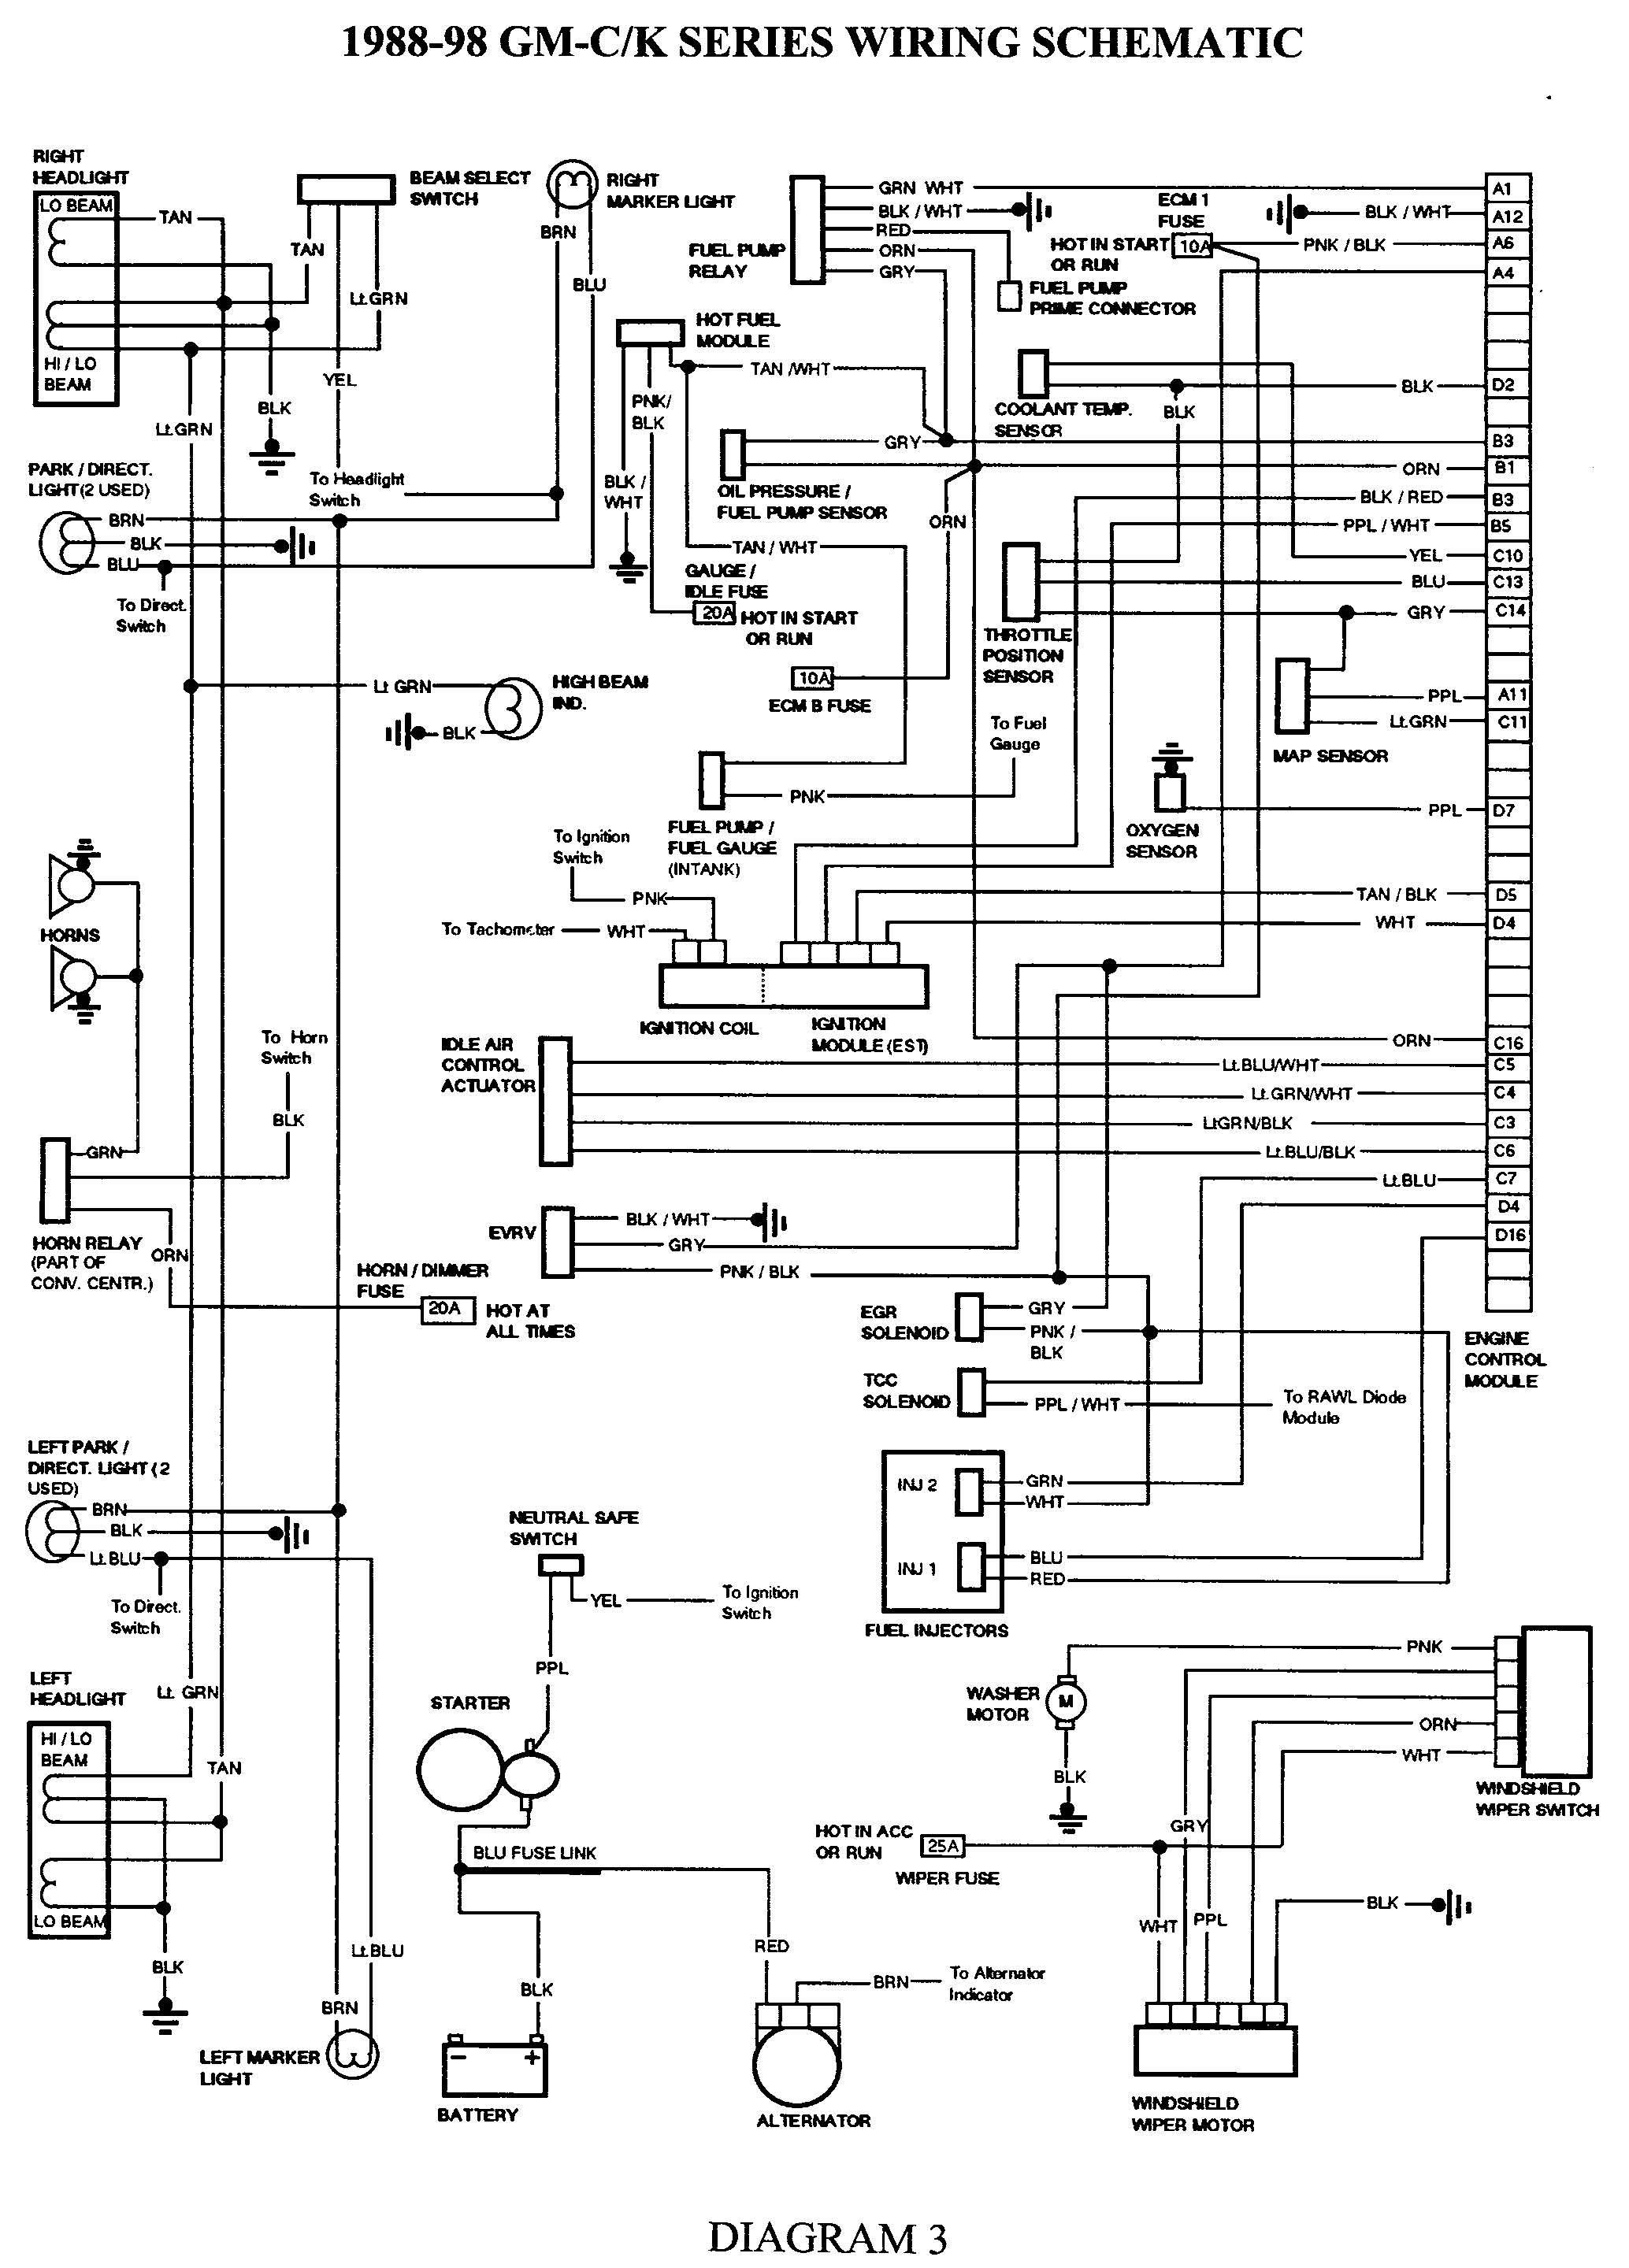 Electric Window Wiring Diagram 2000 Chevy Suburban Power Window Wiring Diagram Wiring Diagram for You Of Electric Window Wiring Diagram